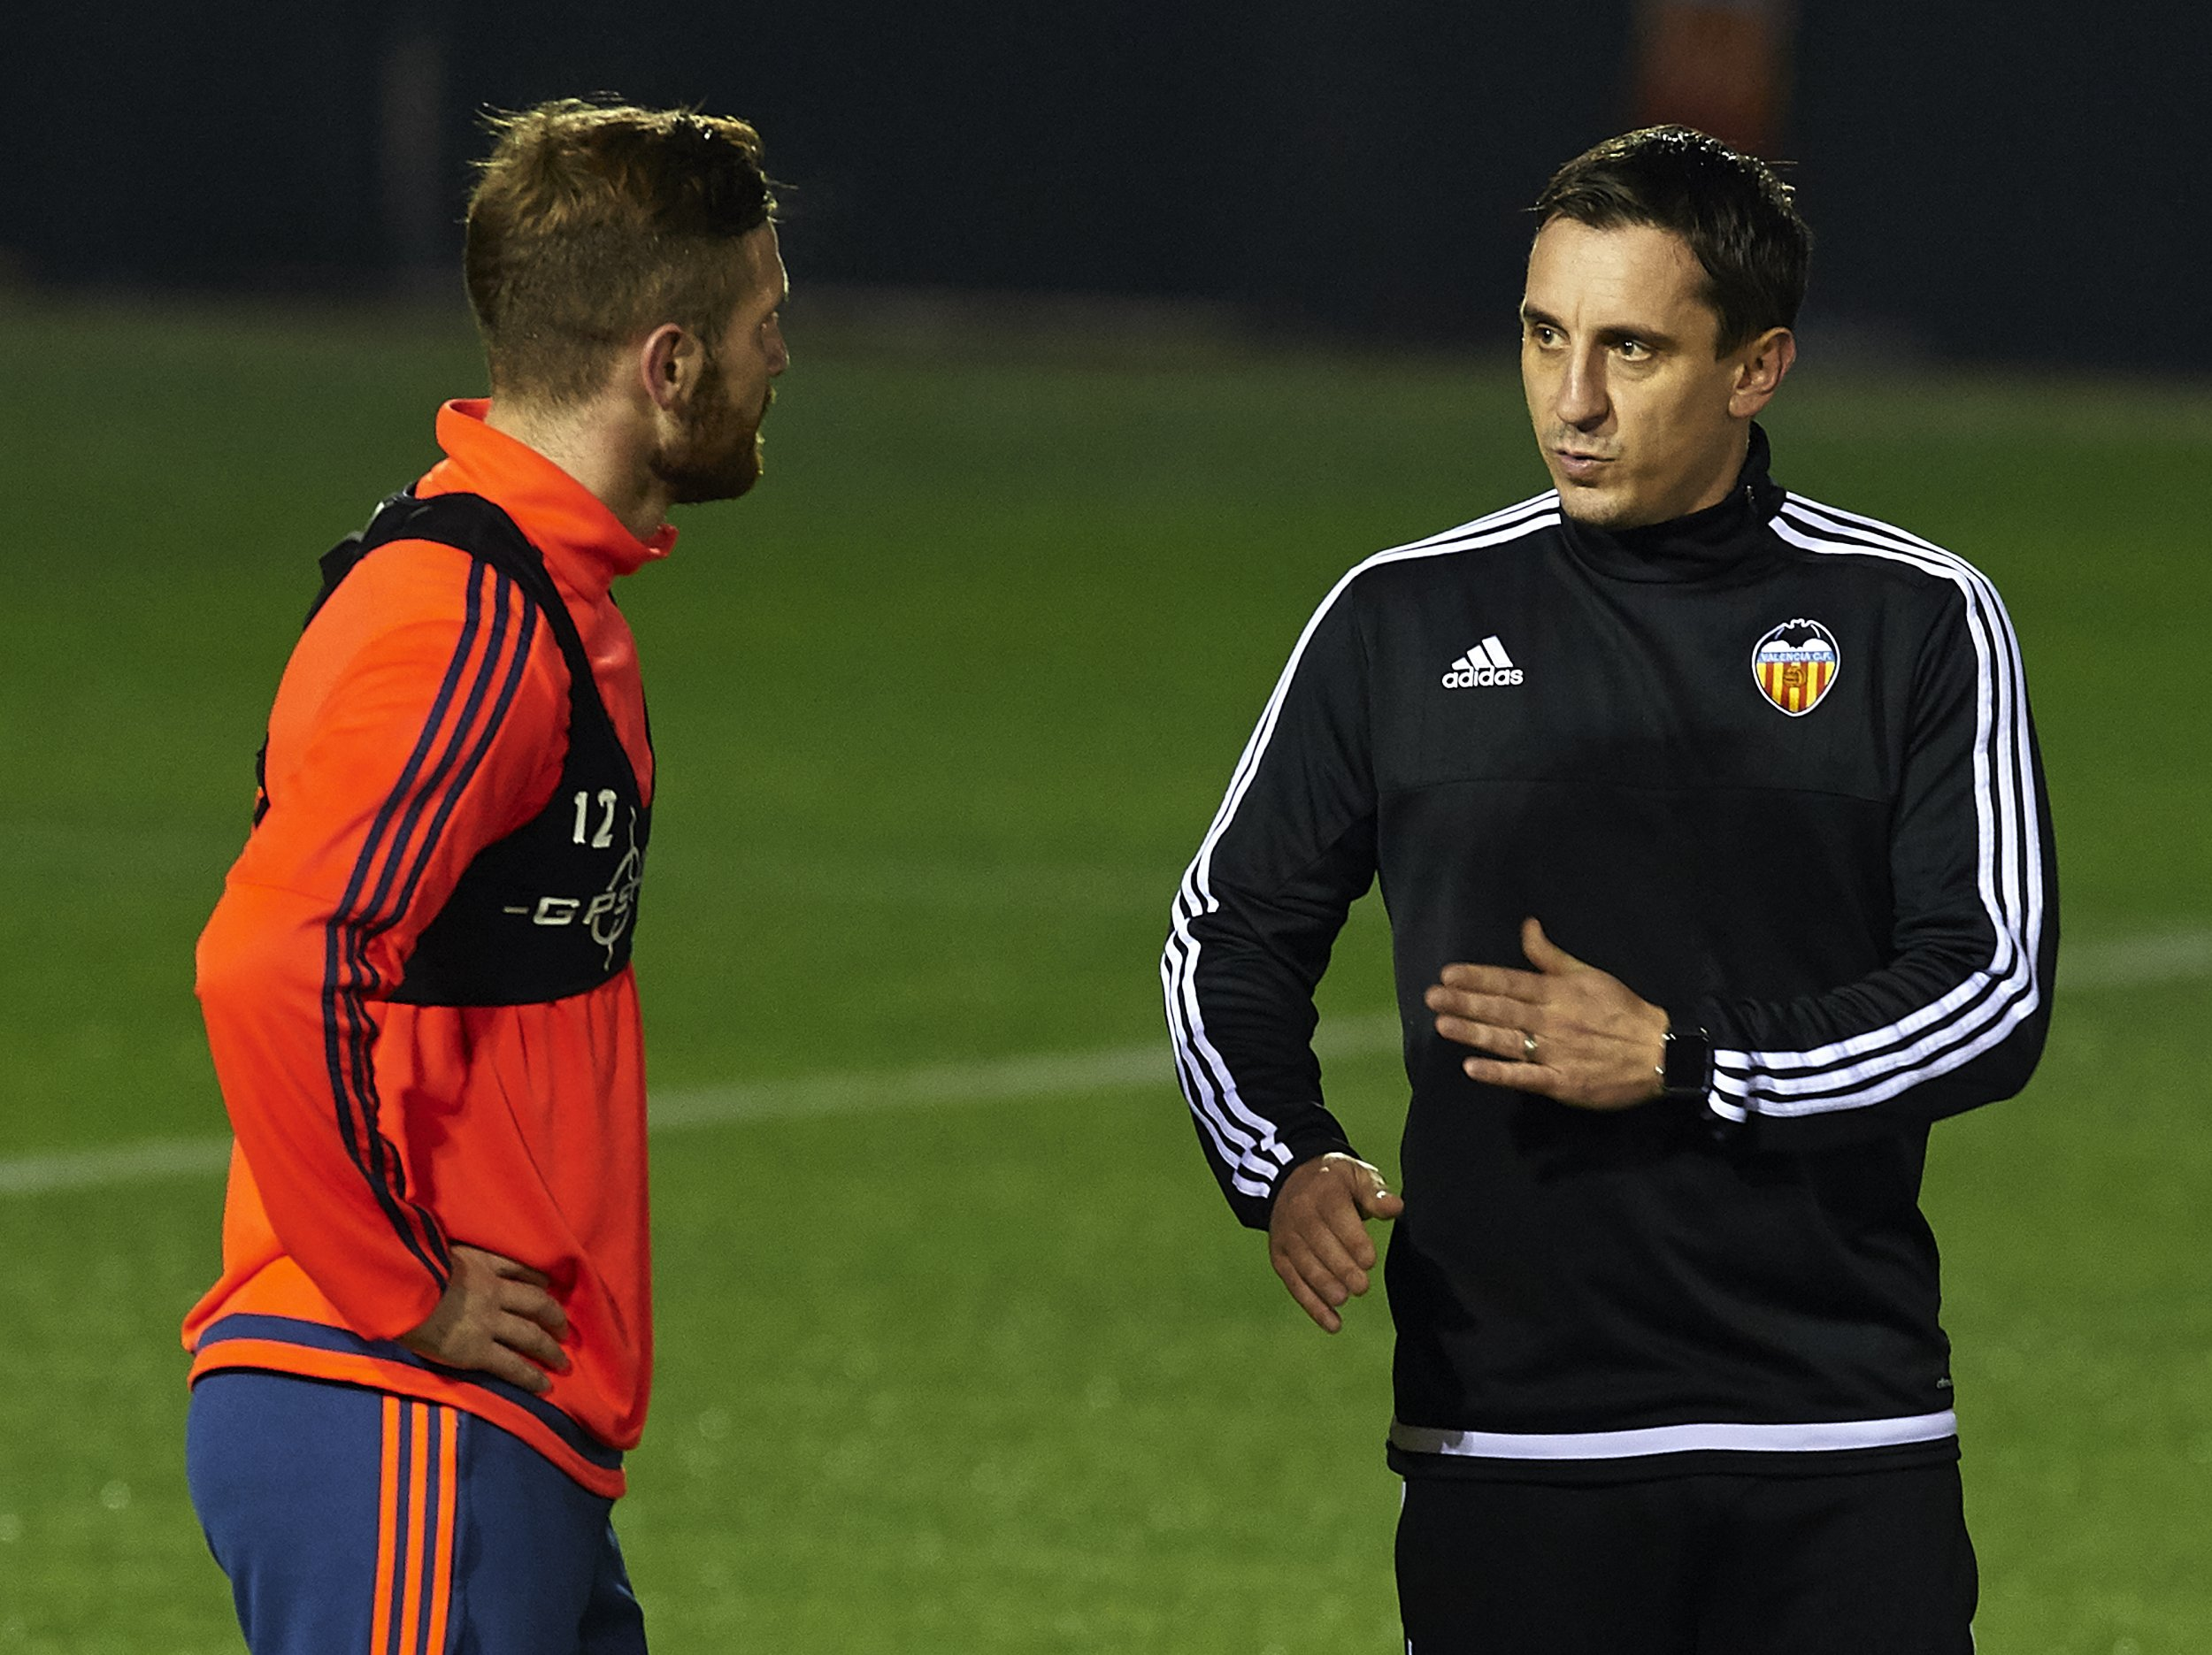 Gary Neville, right, talks to Shkodran Mustafi